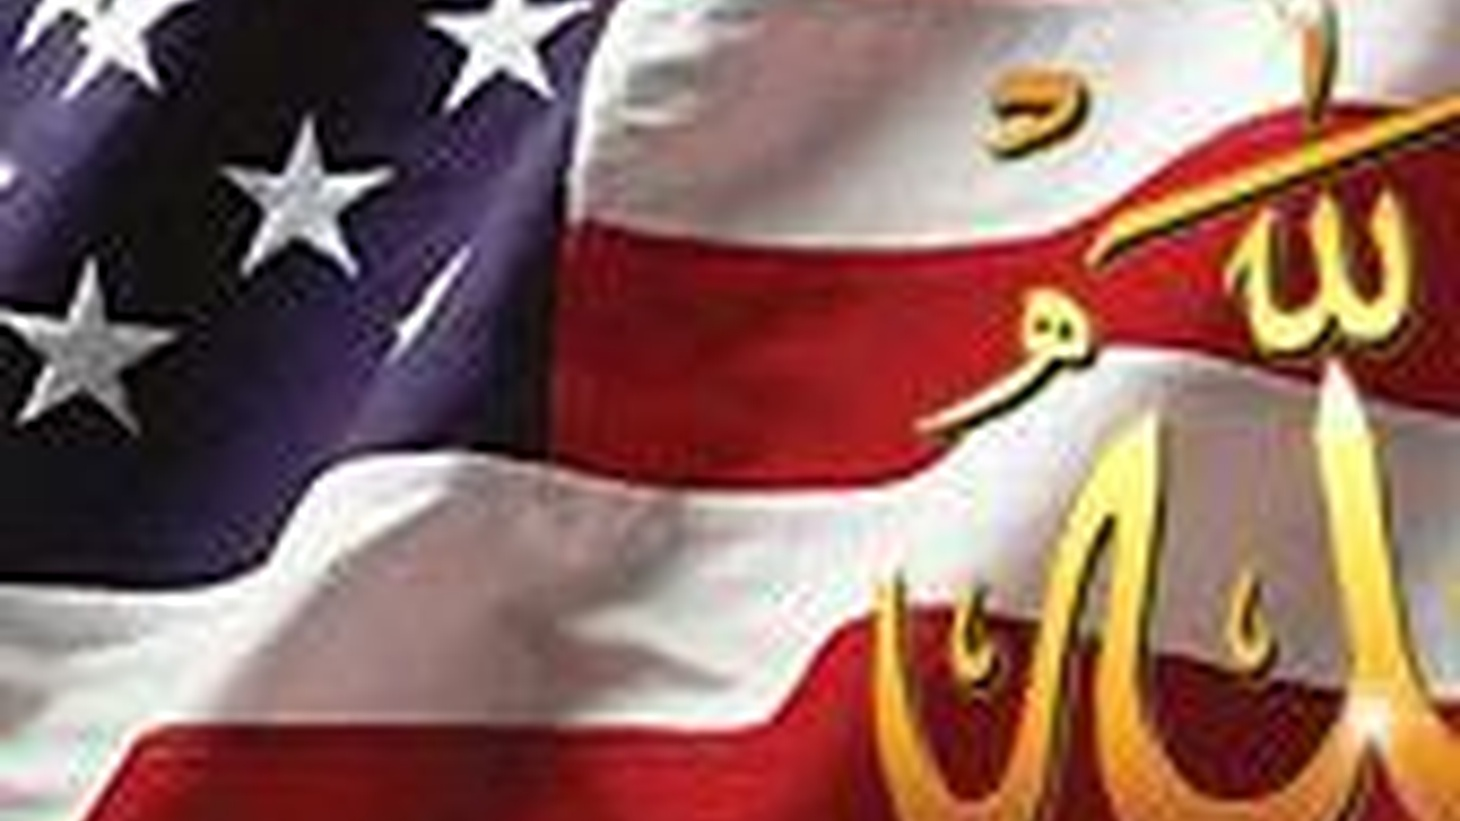 Muslims in America. From politics to the workplace, are Muslims here carving out their own identity? Plus, John Edwards says he'll make another presidential run next year, and film critic Ken Turan on Clint Eastwood's remarkable pair of films about the battle for Iwo Jima. Sara Terry guest hosts.